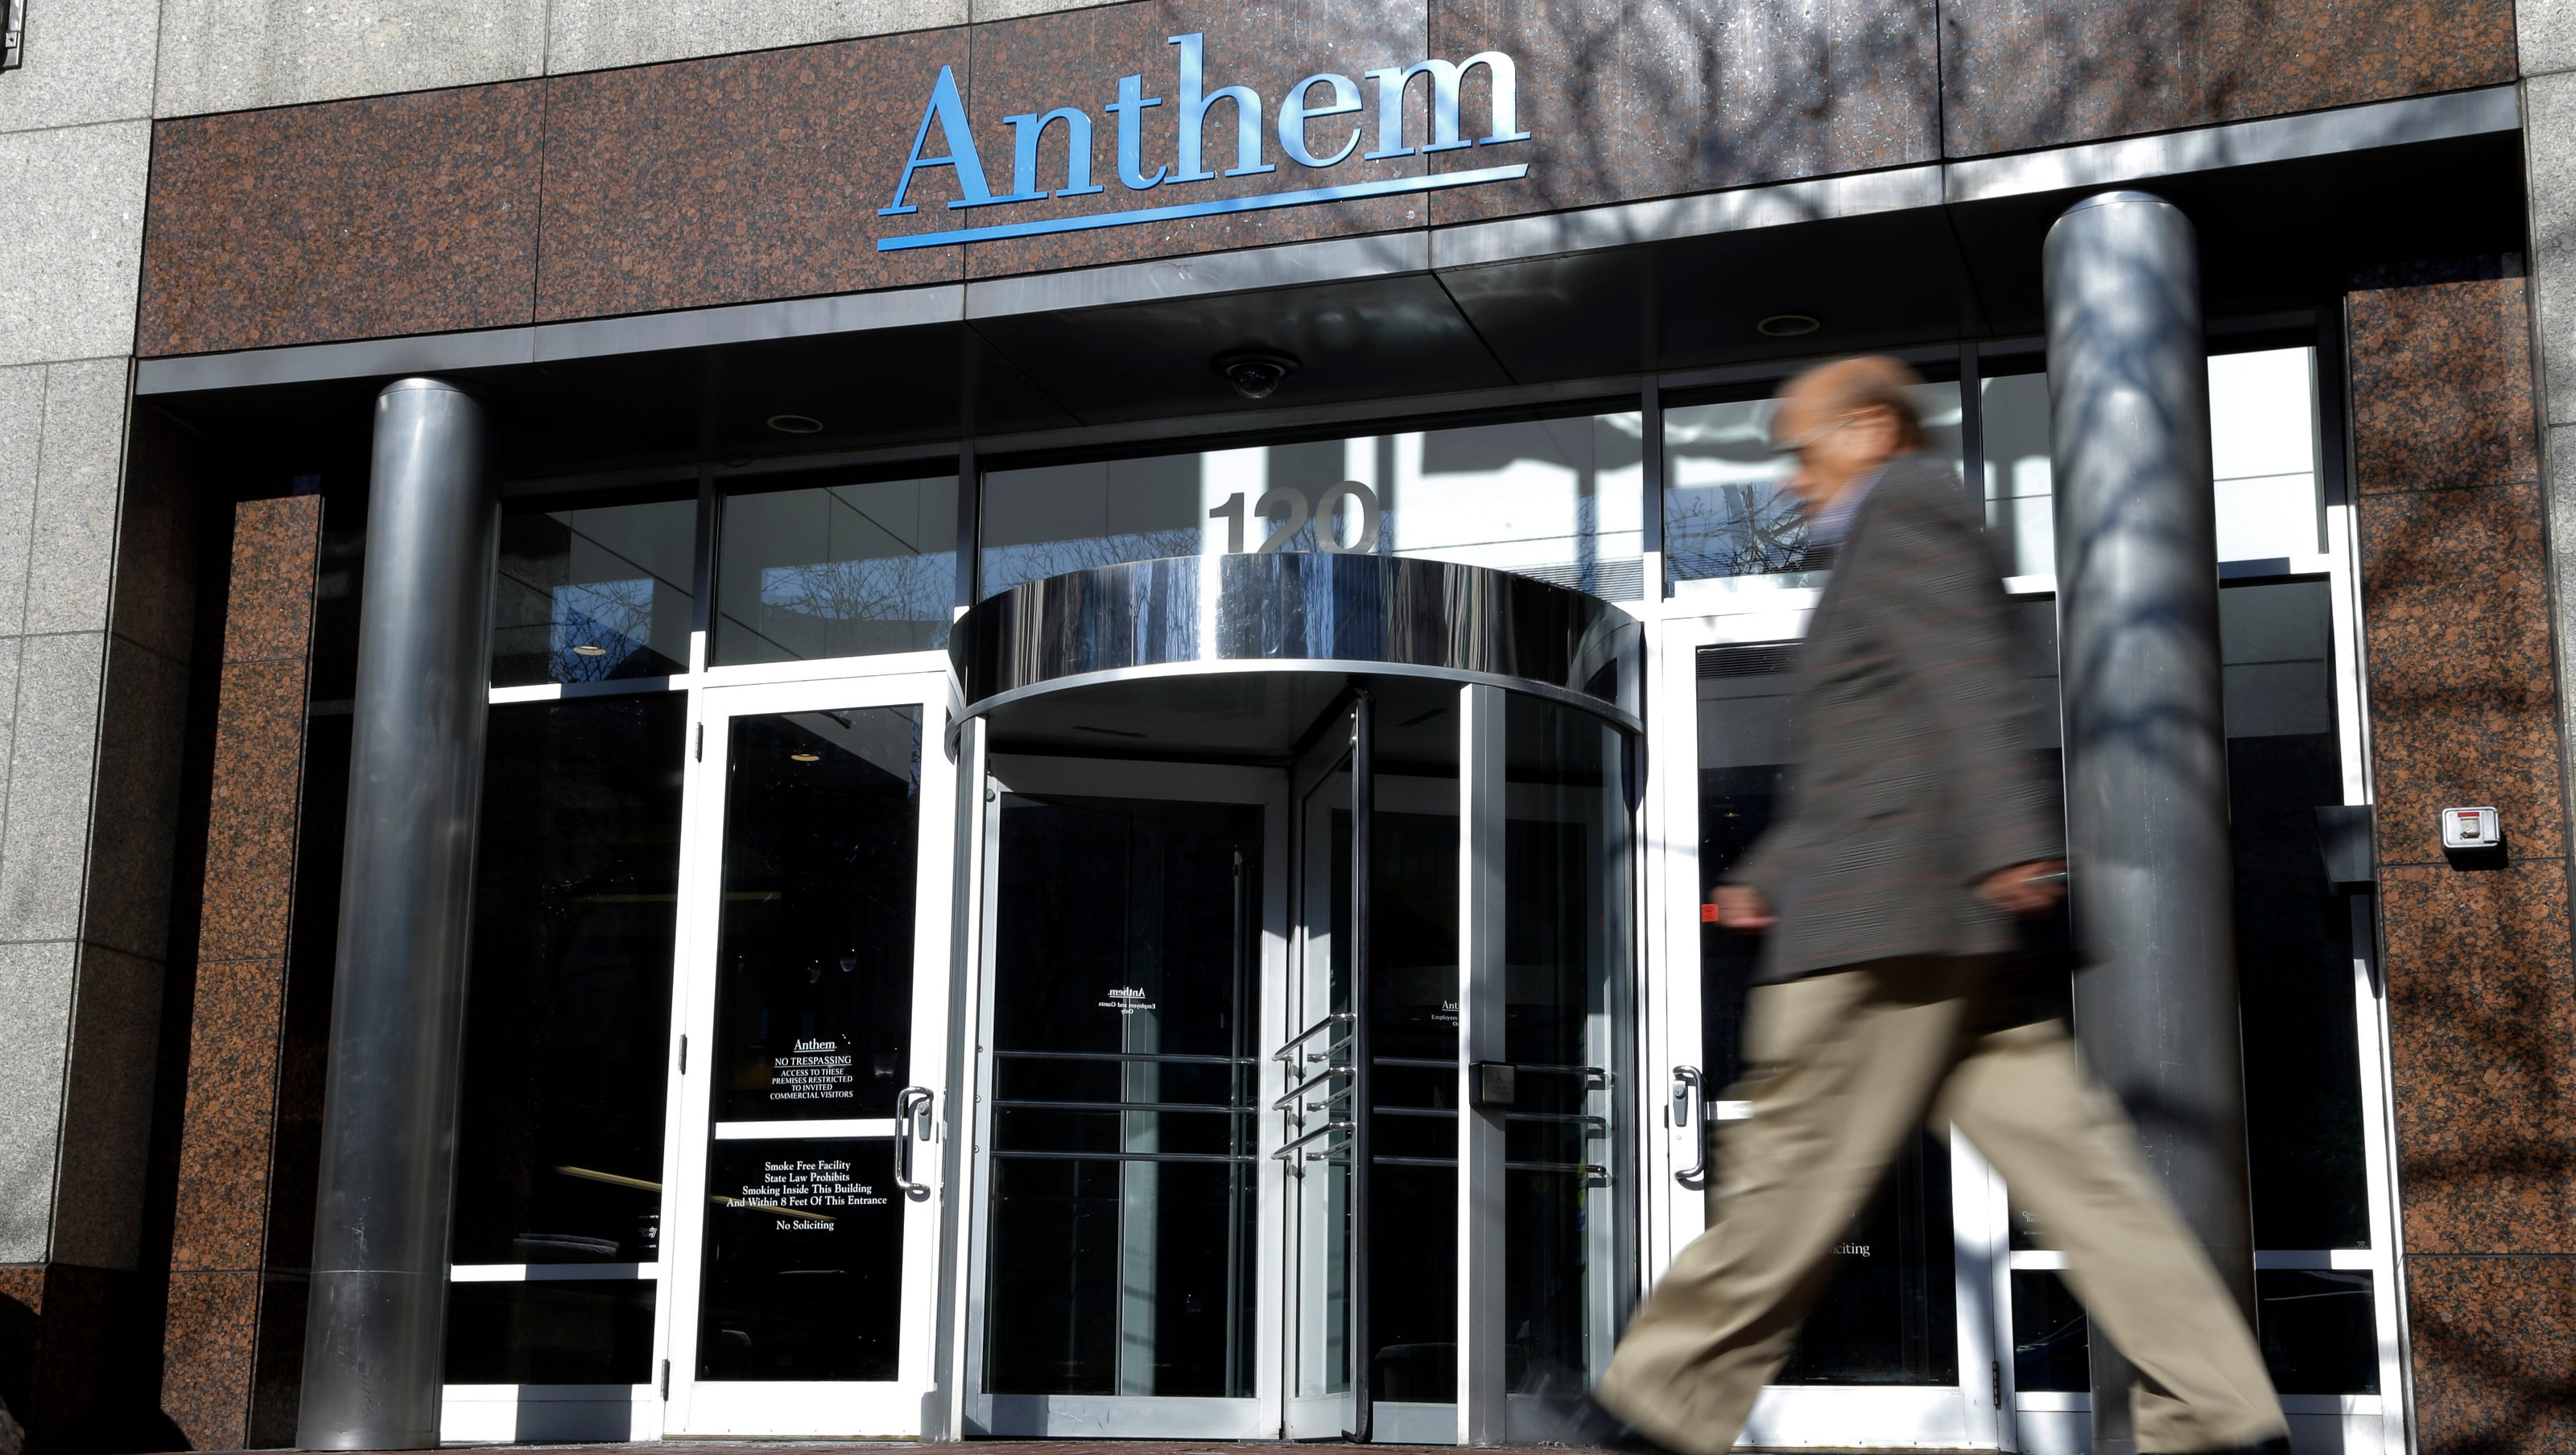 Two of four insurers will no longer sell Obamacare plans ...